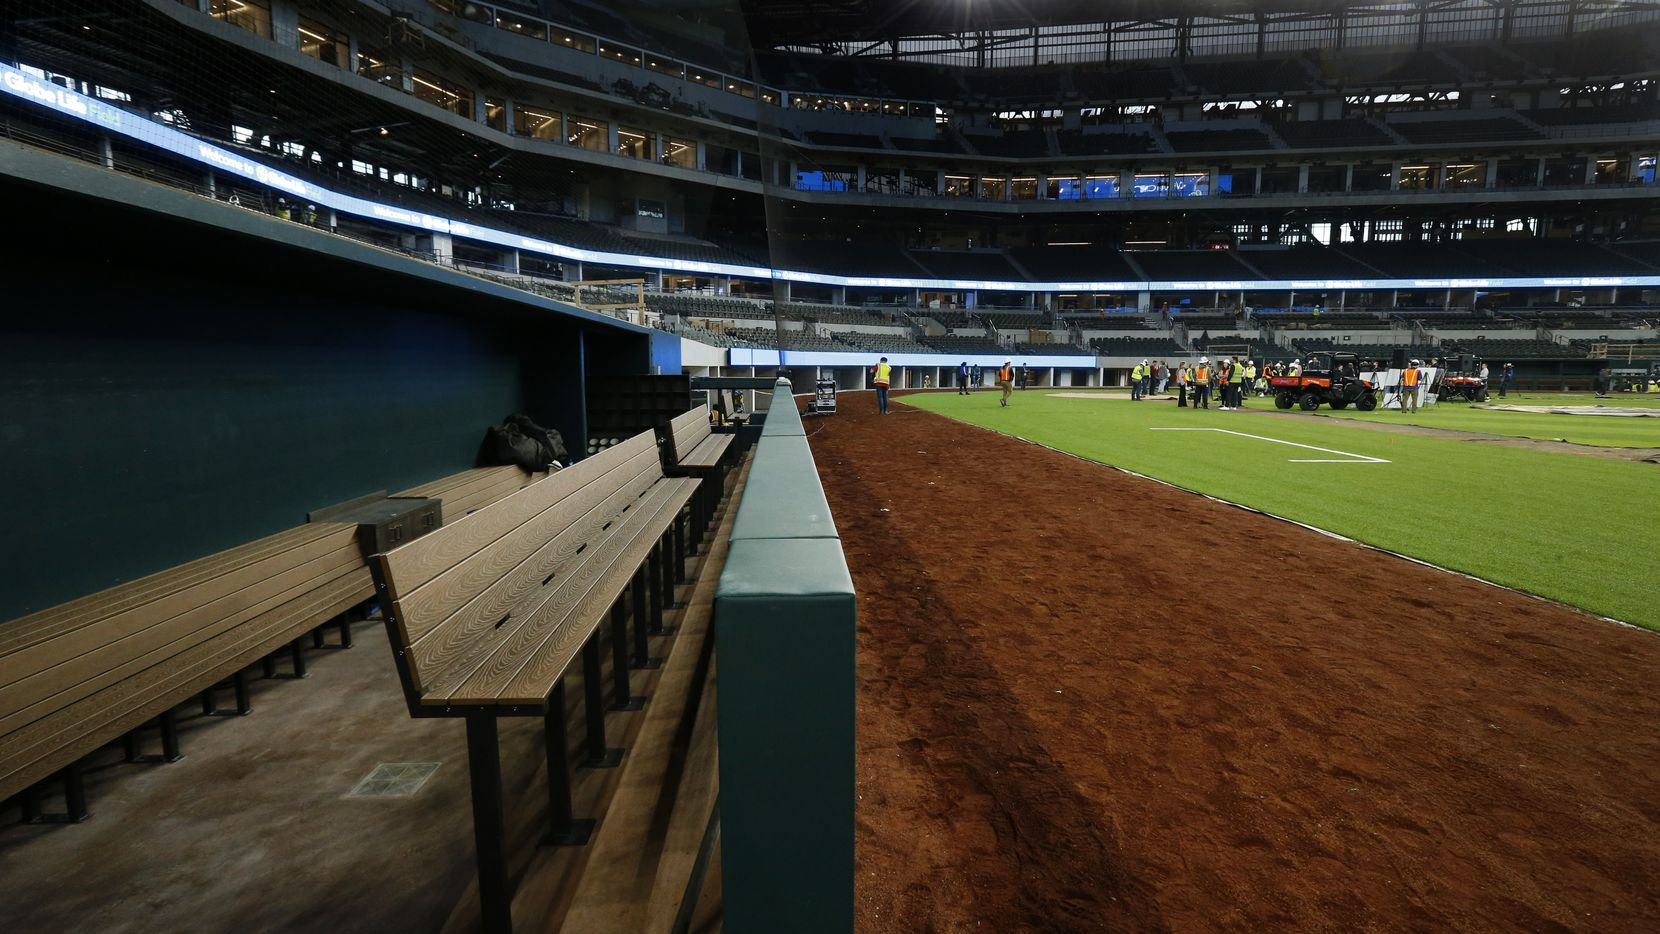 The Texas Rangers dugout is nearing completion inside the new Globe Life Field under construction in Arlington, Texas, Wednesday, March 4, 2020.